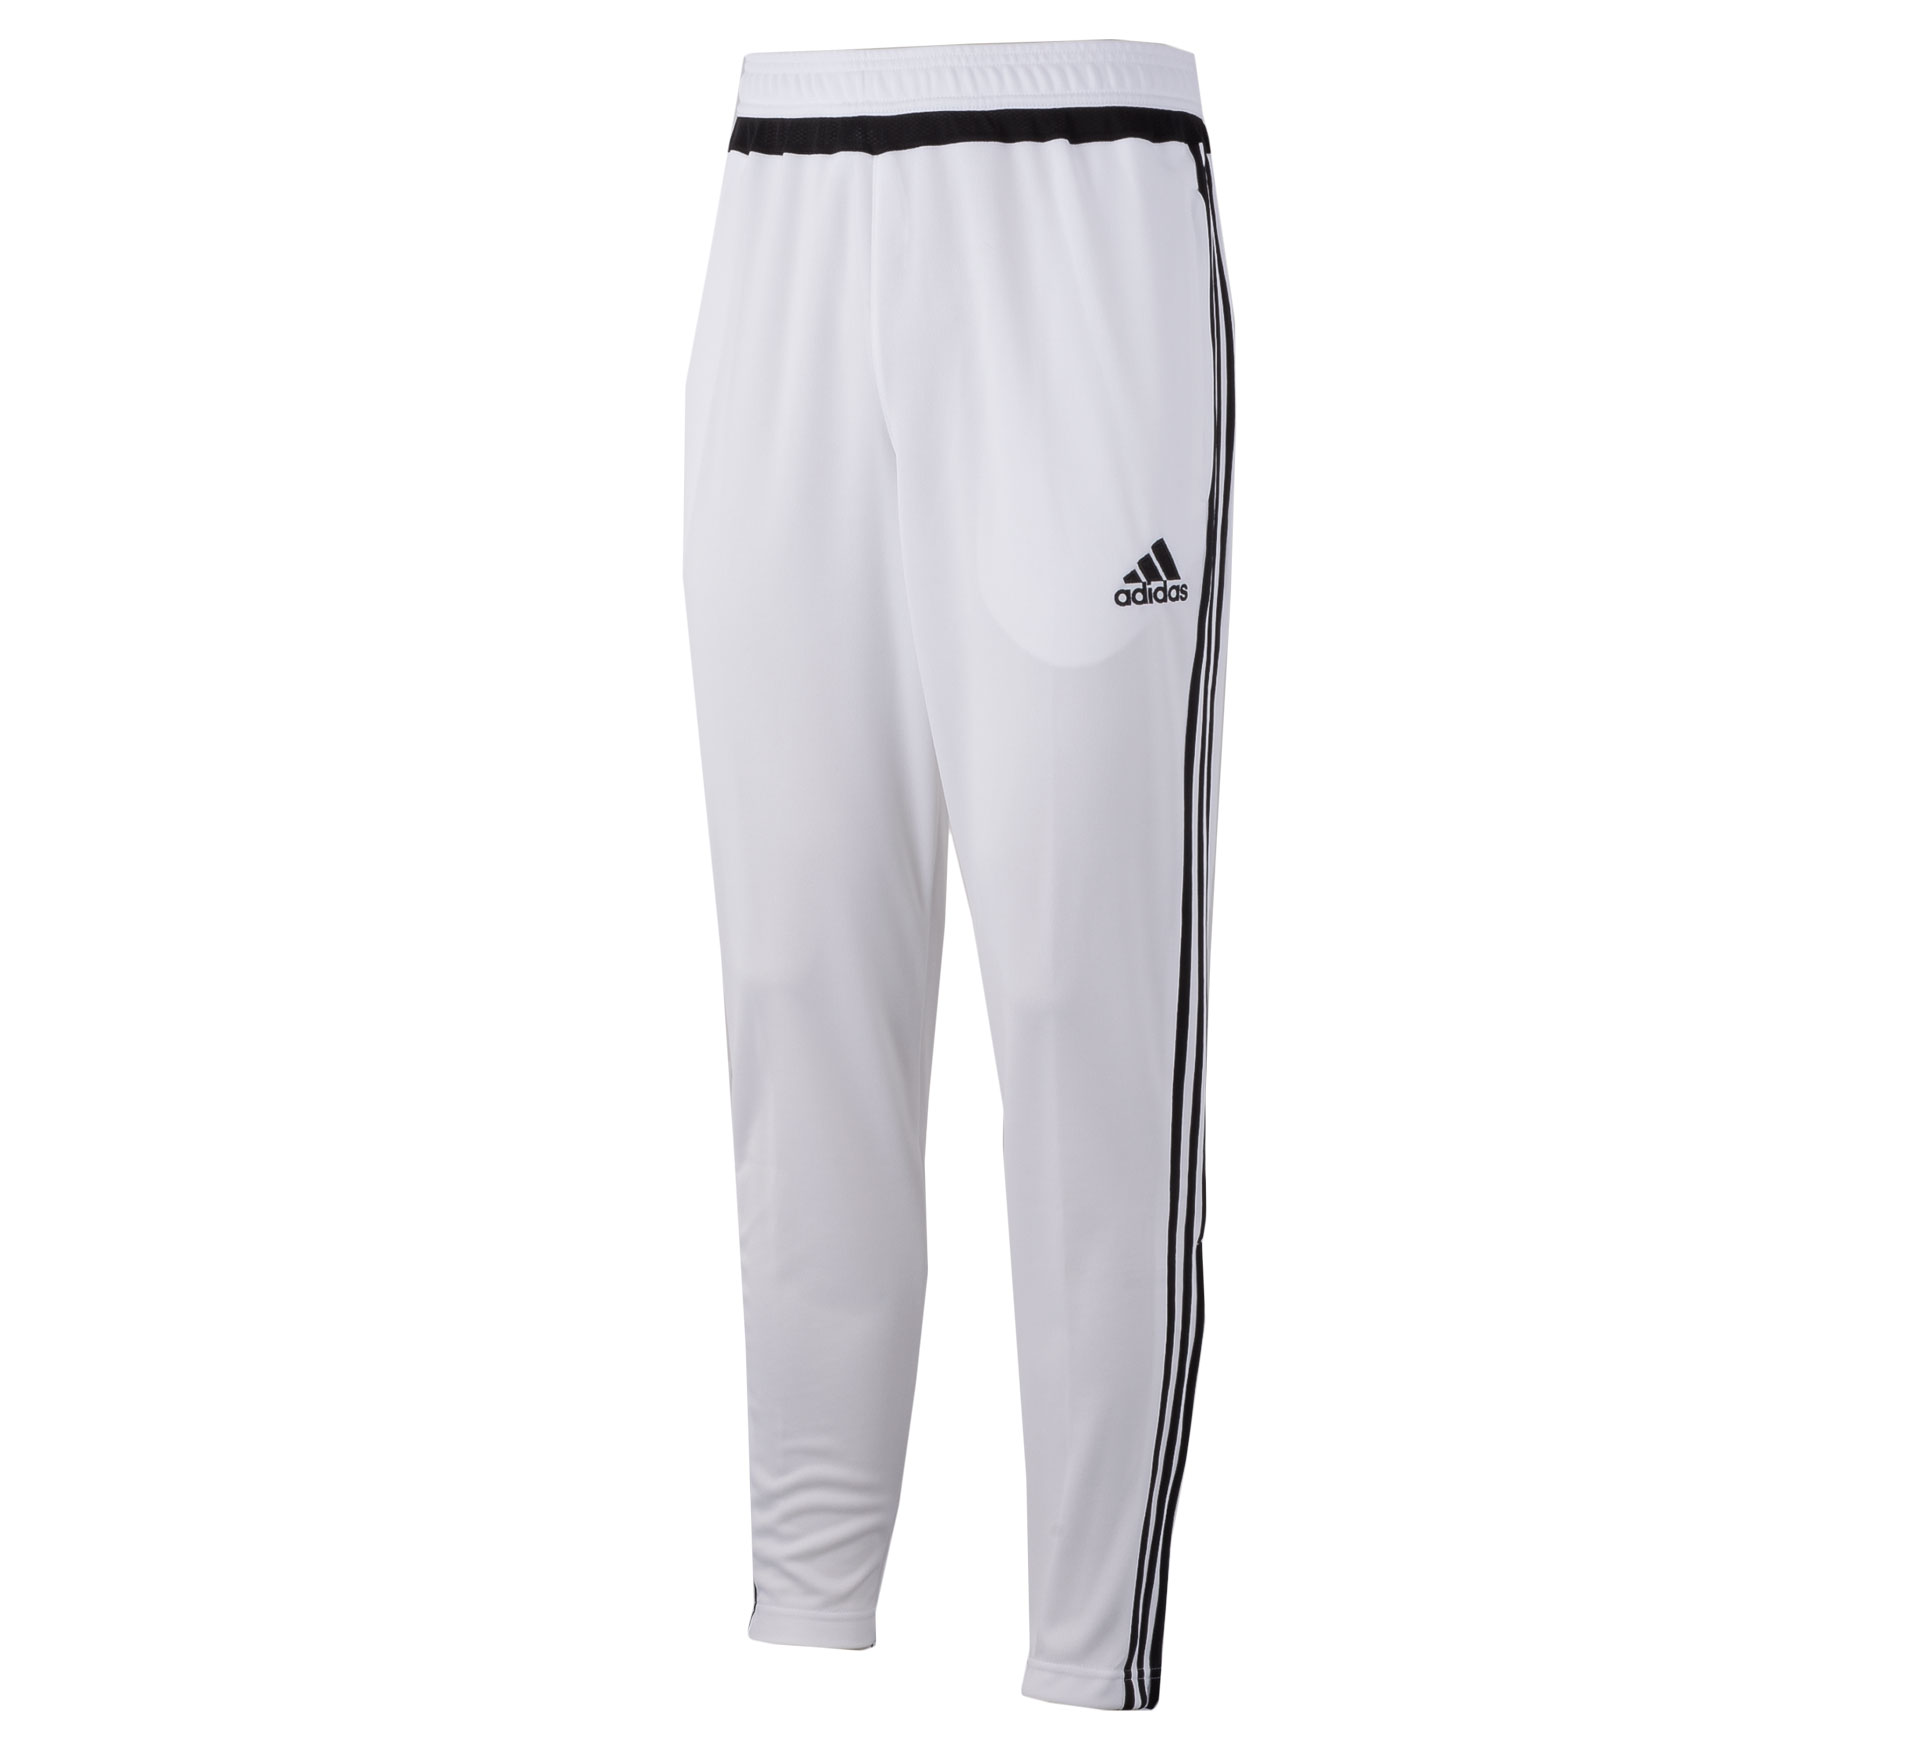 Adidas  Tiro 15 Trainingsbroek Heren wit - zwart